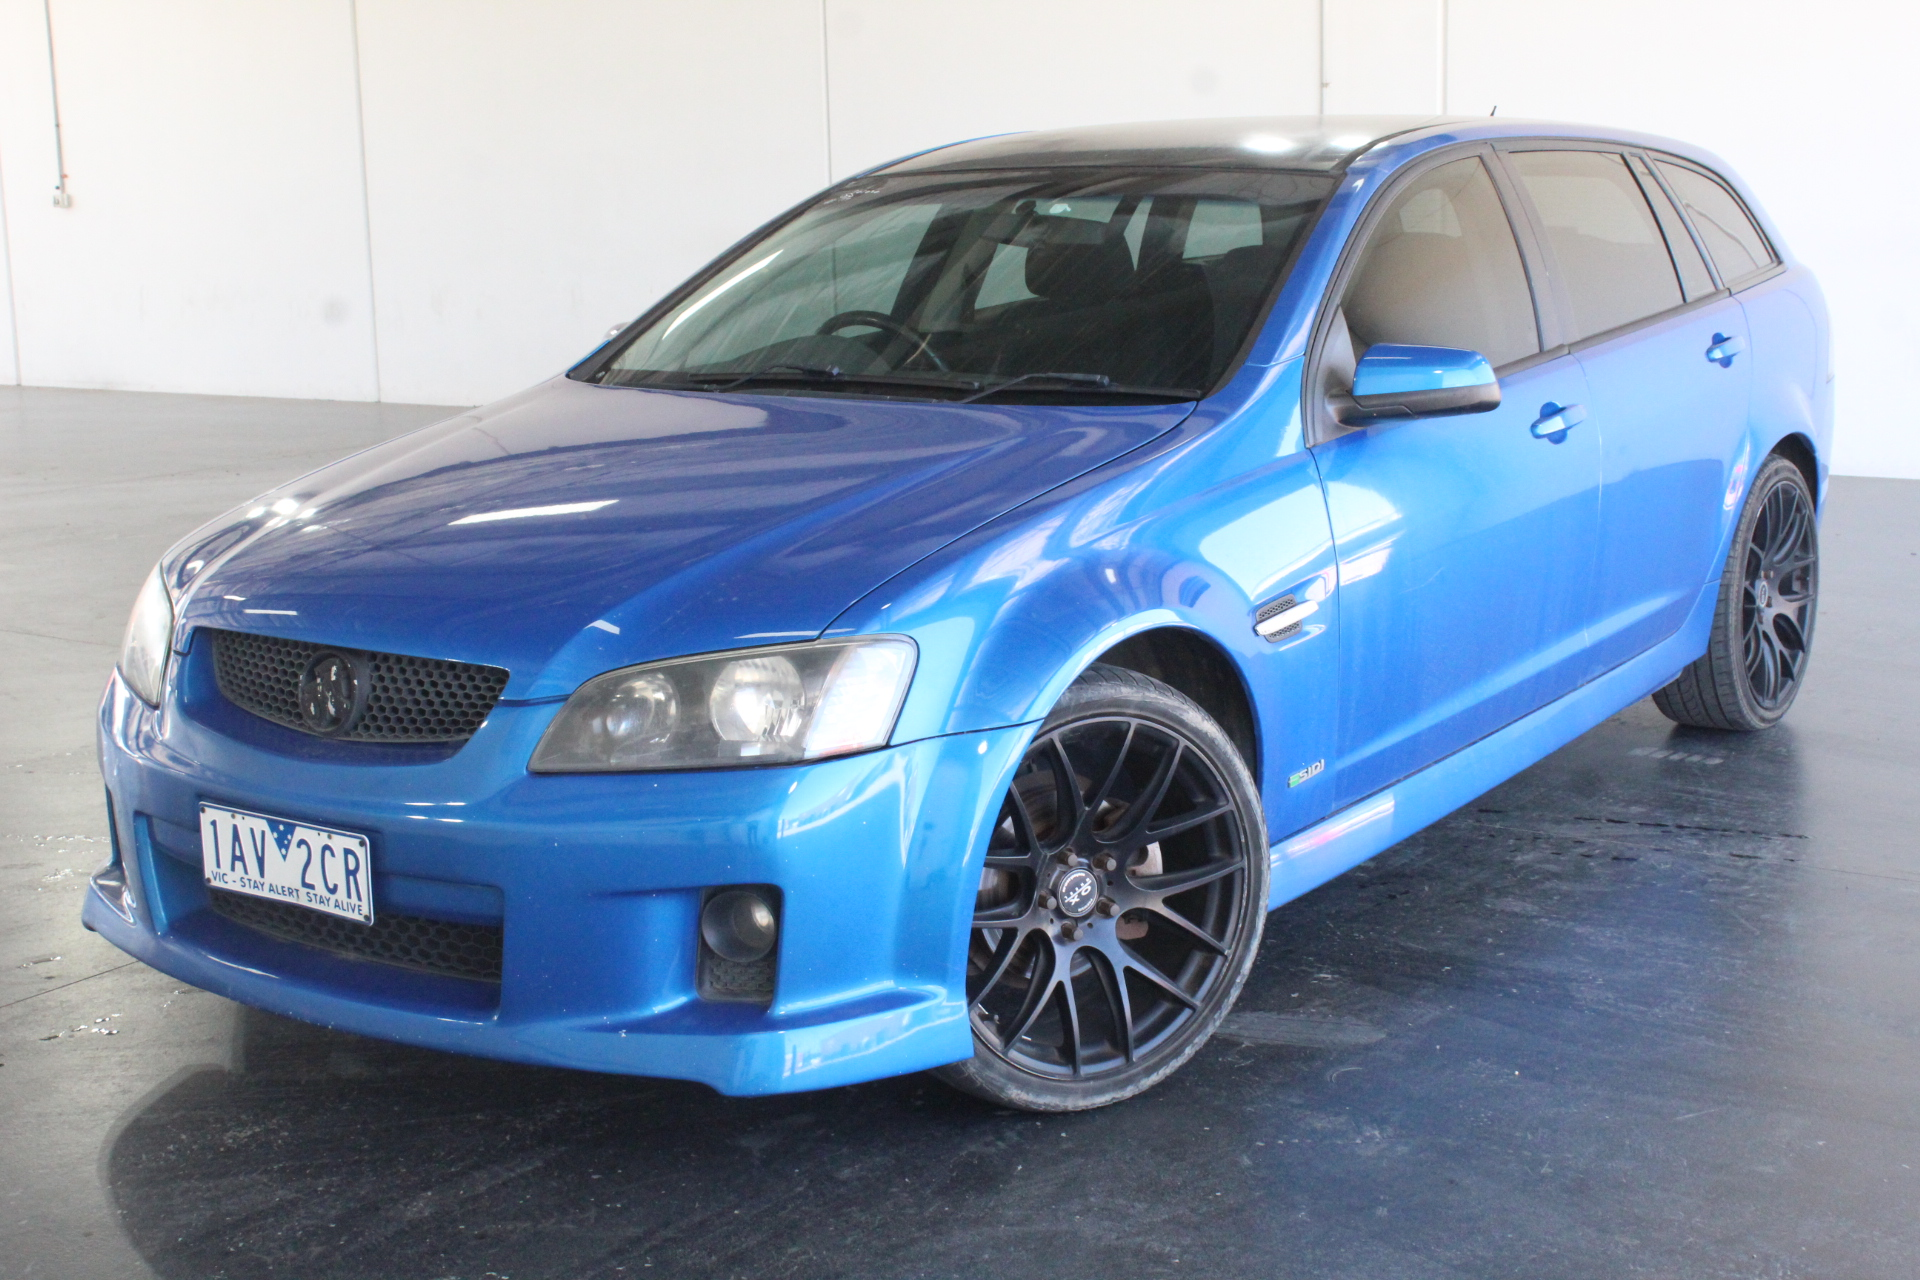 2009 Holden Commodore SV6 VE Automatic Wagon (WOVR)